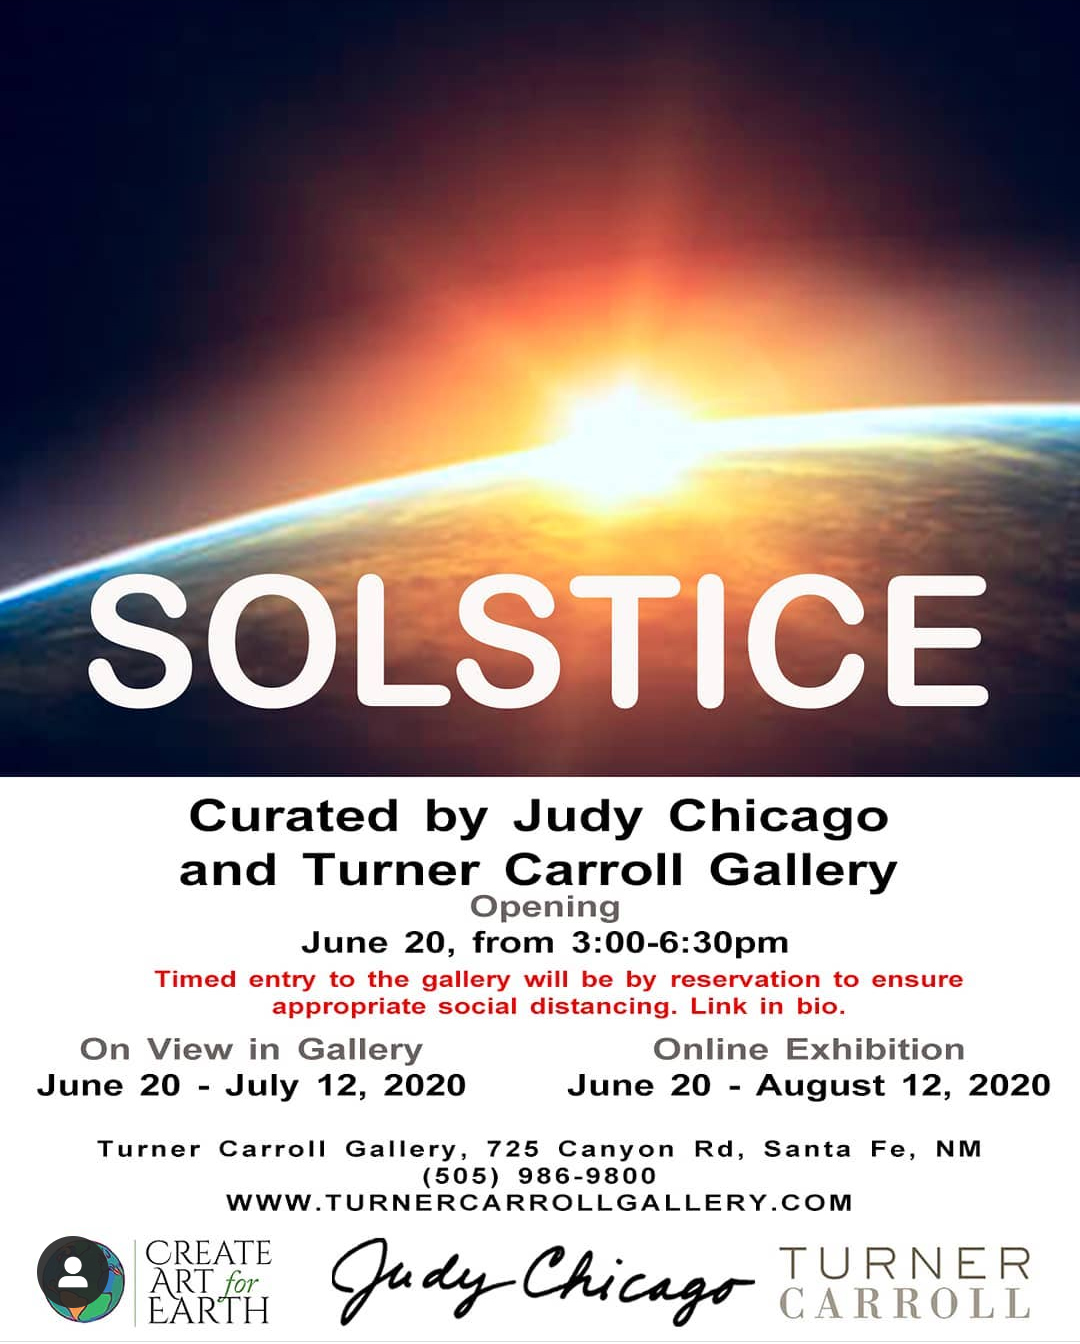 solstice create art for earth - Judy Chicago - Turner Carroll Gallery